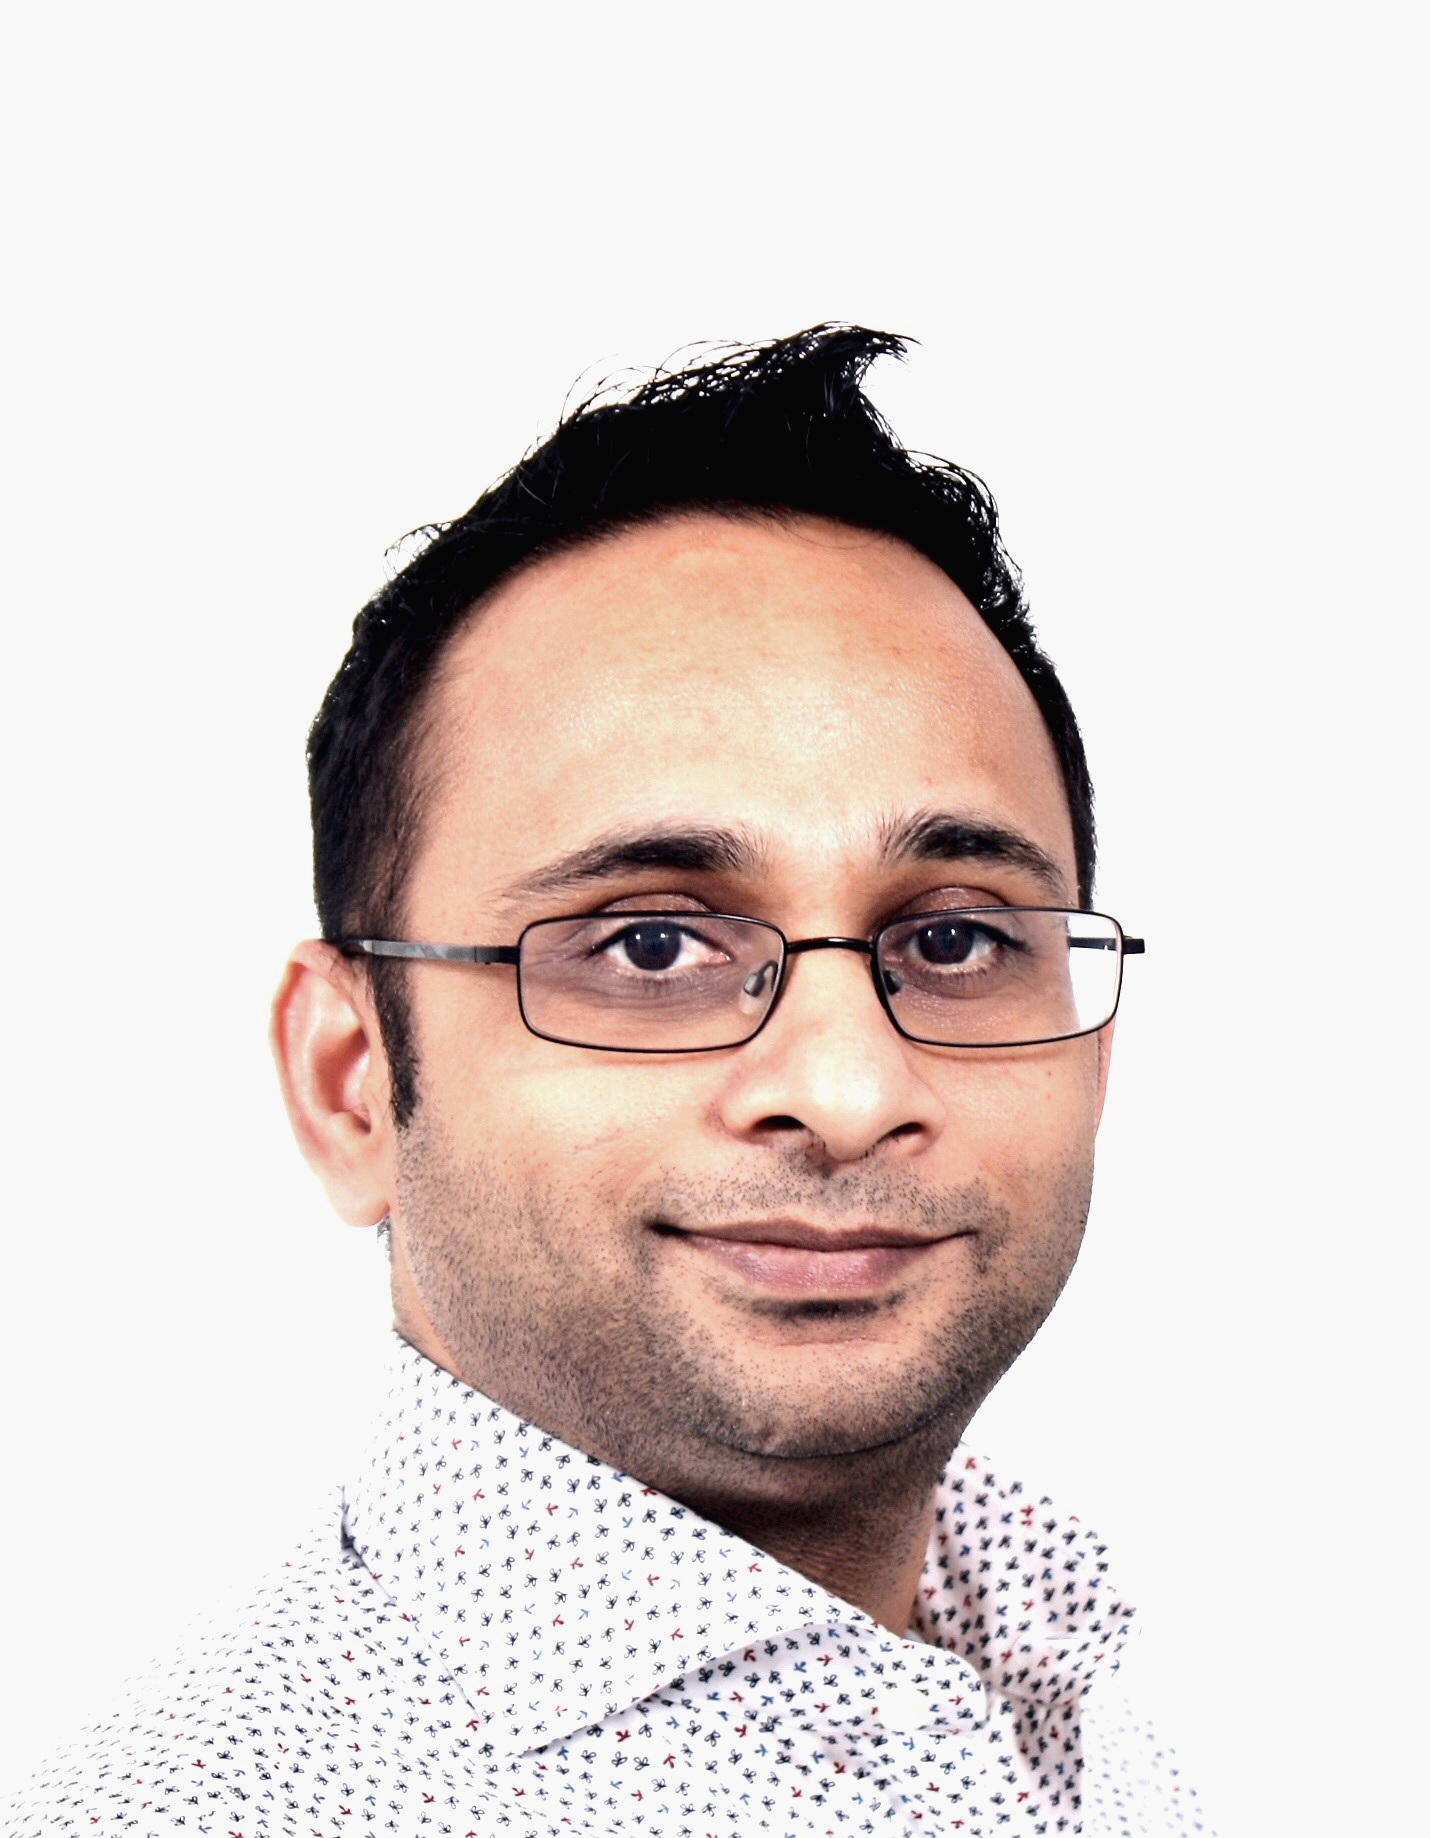 content ceator Harish @quantamix for blog Top 8 Factors and Top 8 Solutions for Local SEO in Digital Marketing